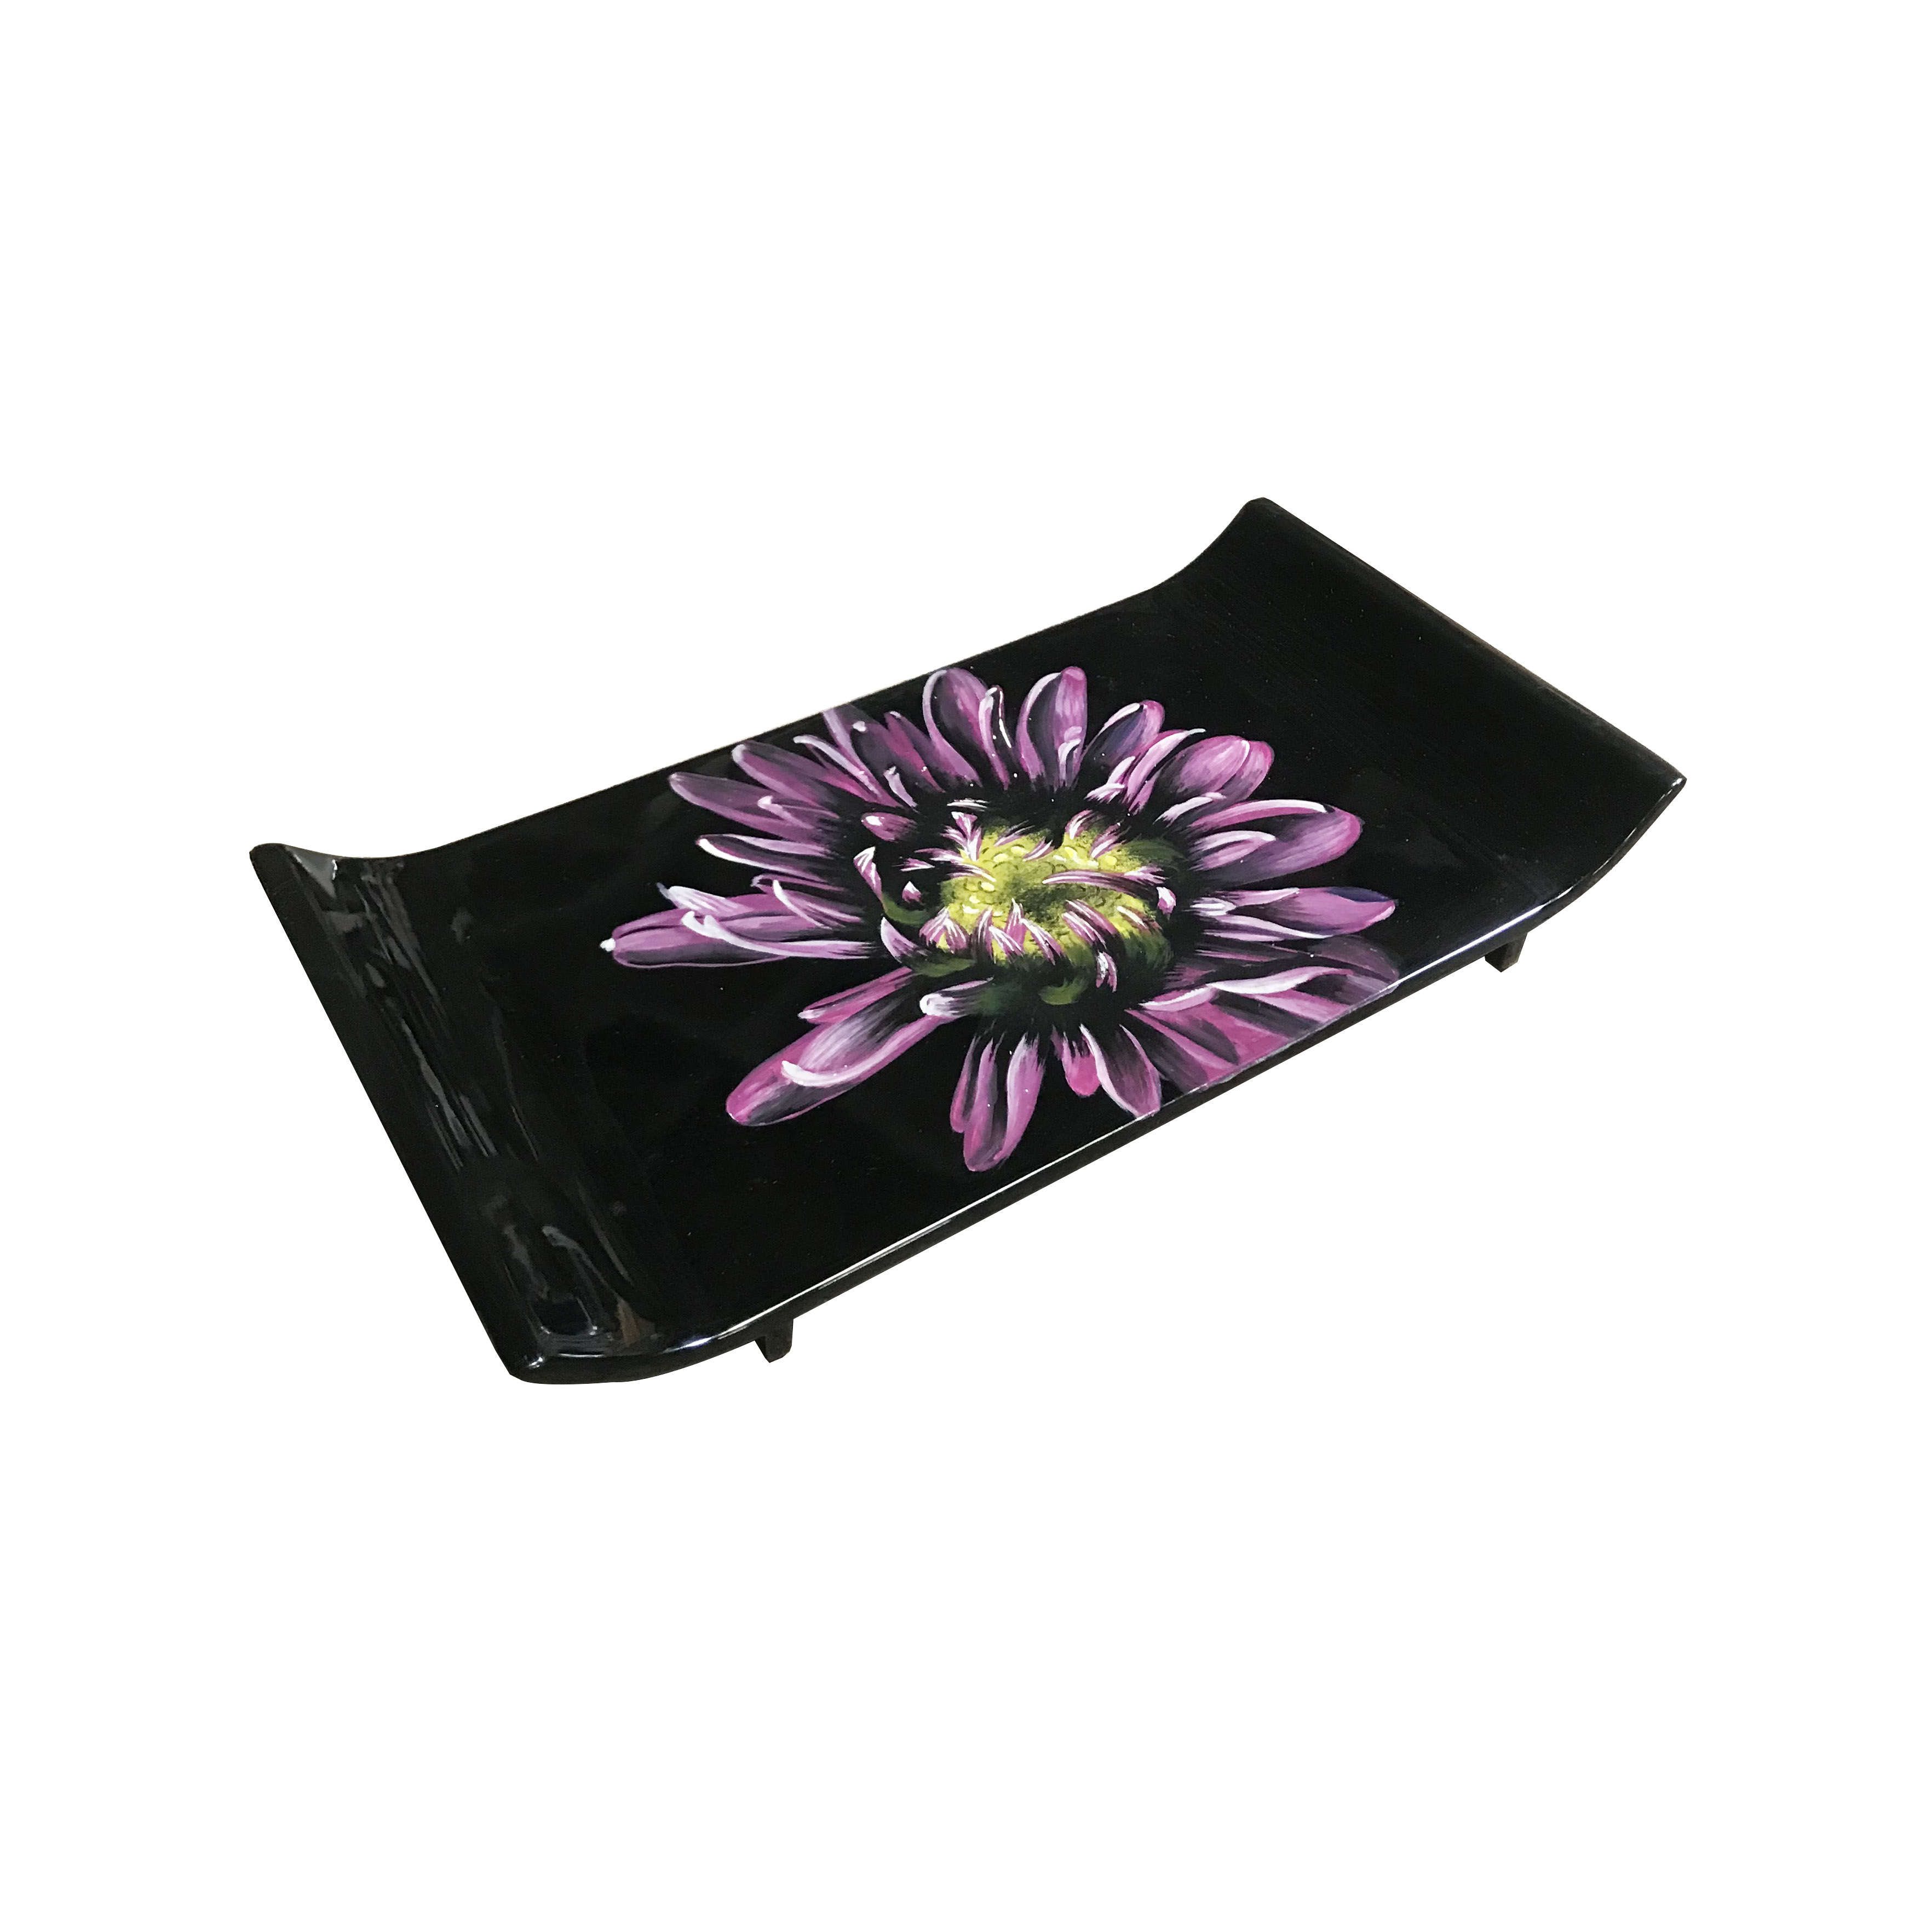 Hand-painted Flower Lacquer Tray